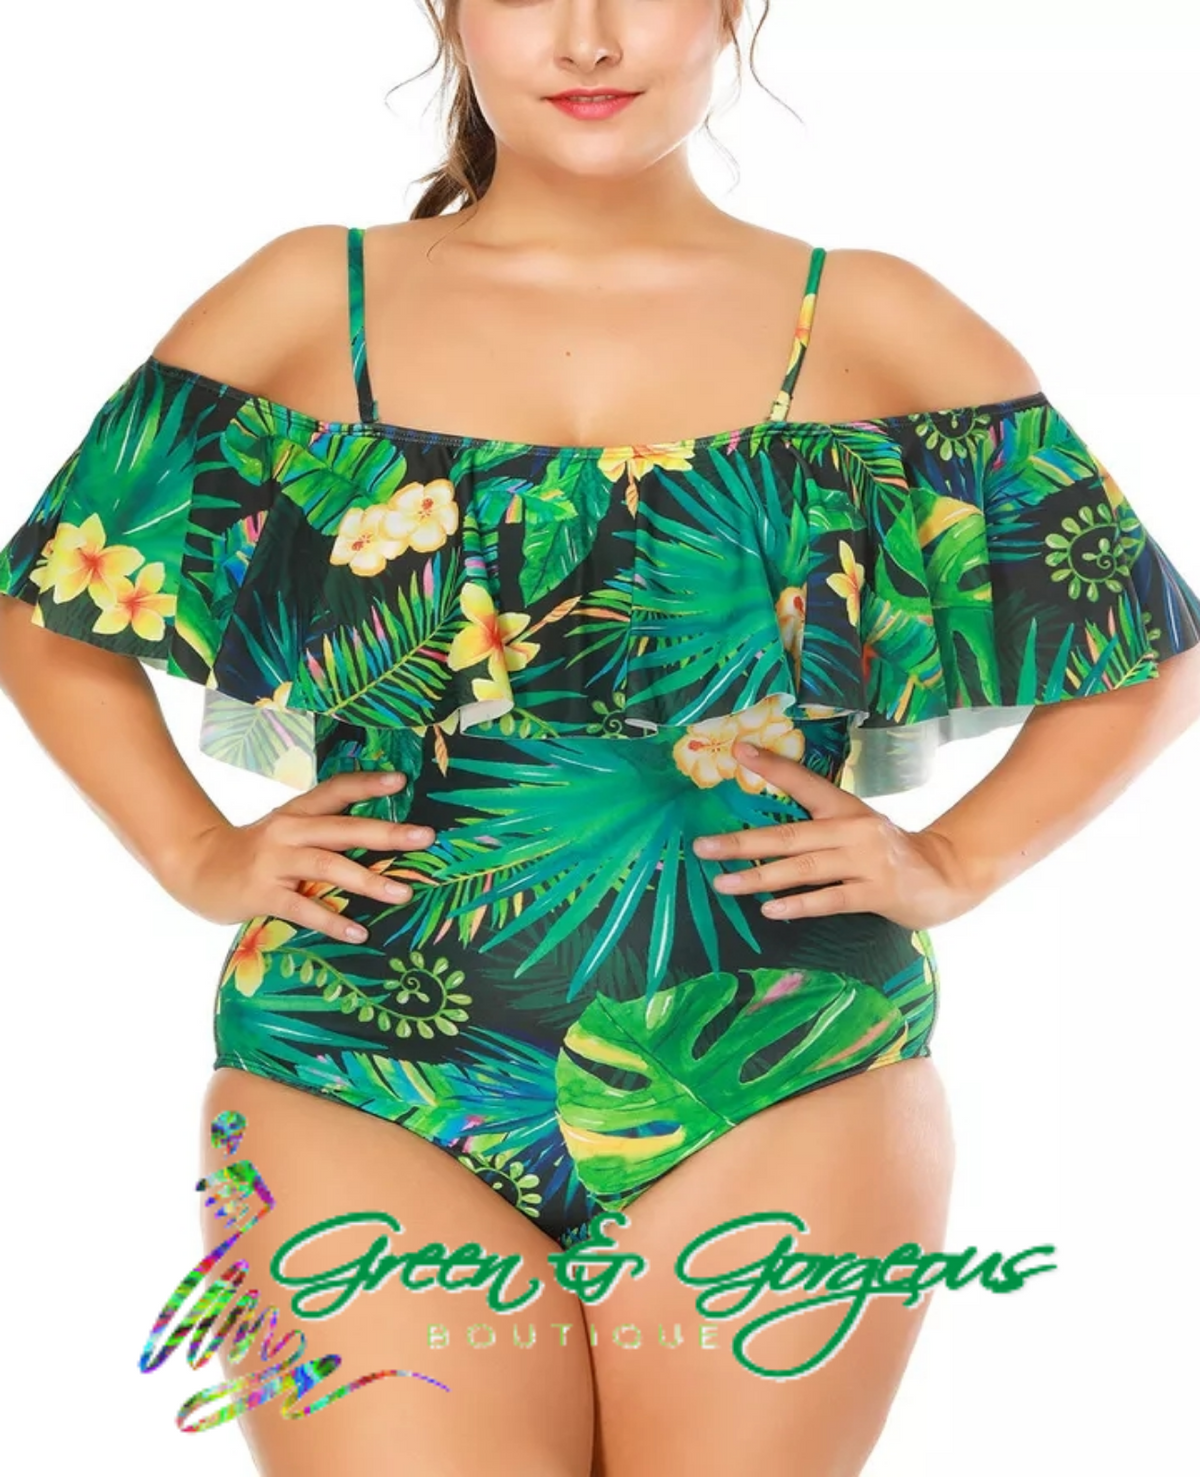 Tropical Dark Green Leaf Print One Piece Swimsuit (Plus Size)- $39.50